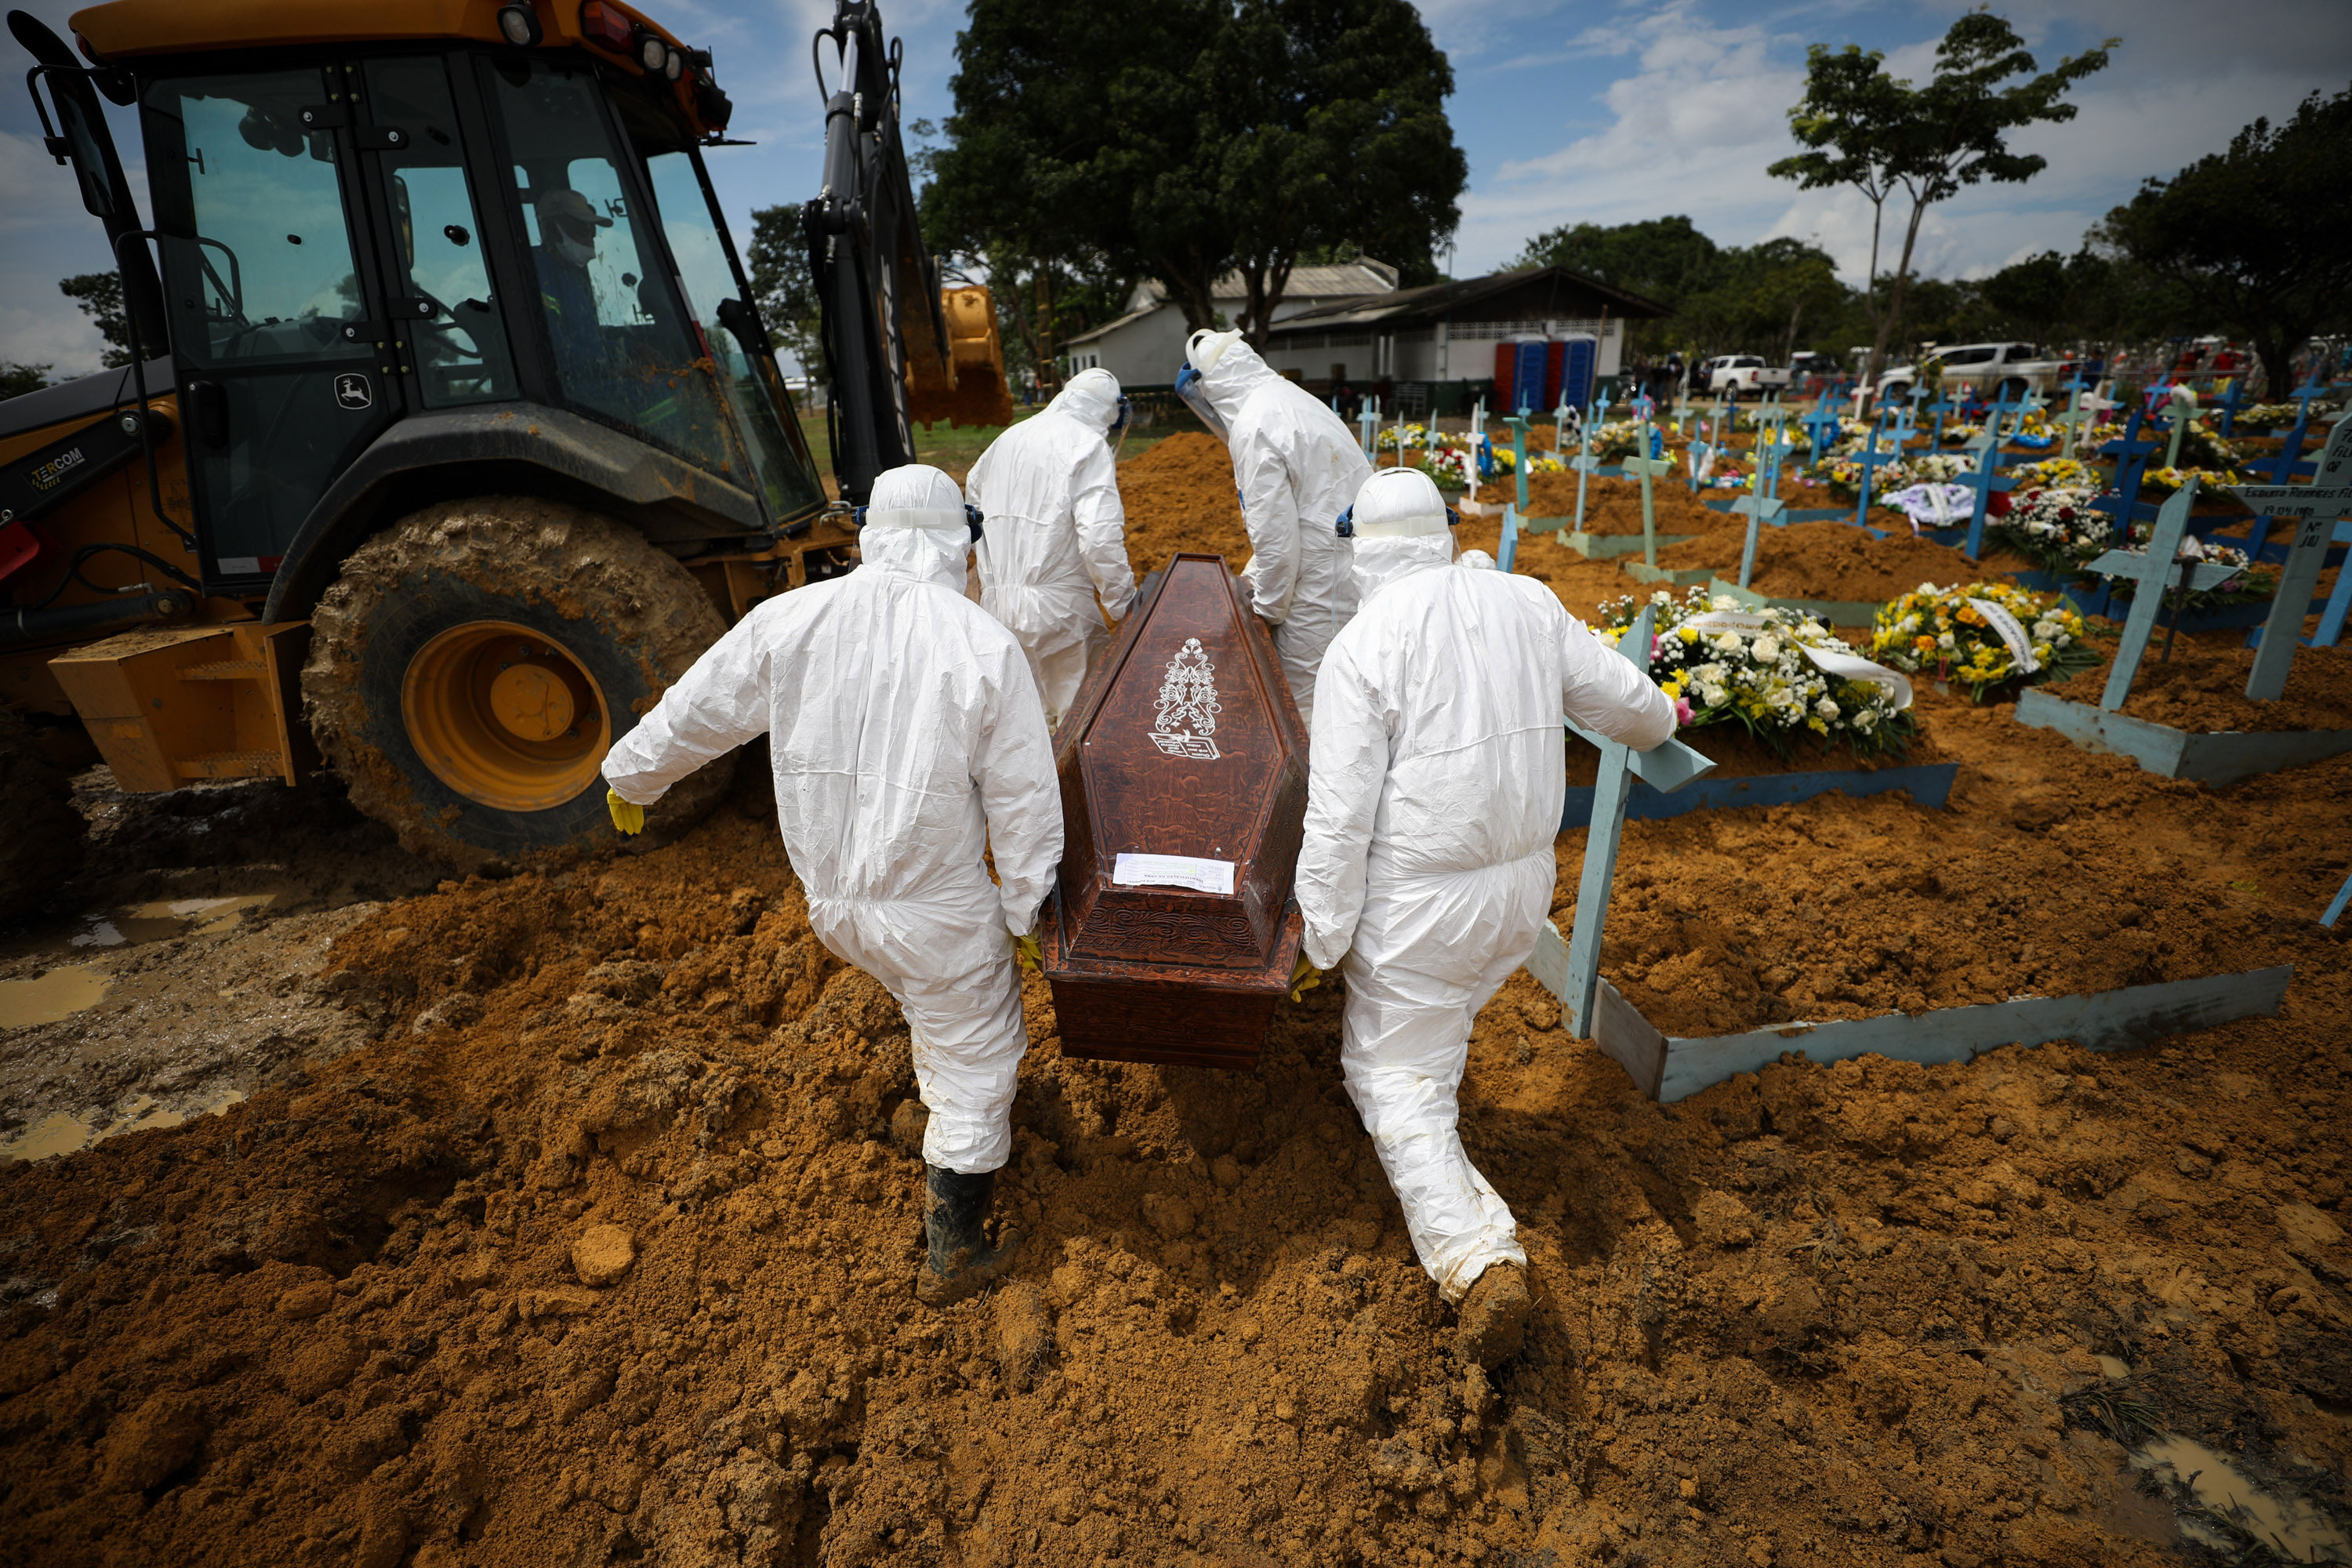 Cemetery workers in Manaus, Brazil, carry the coffin of a person said to have died of Covid-19, on January 15.